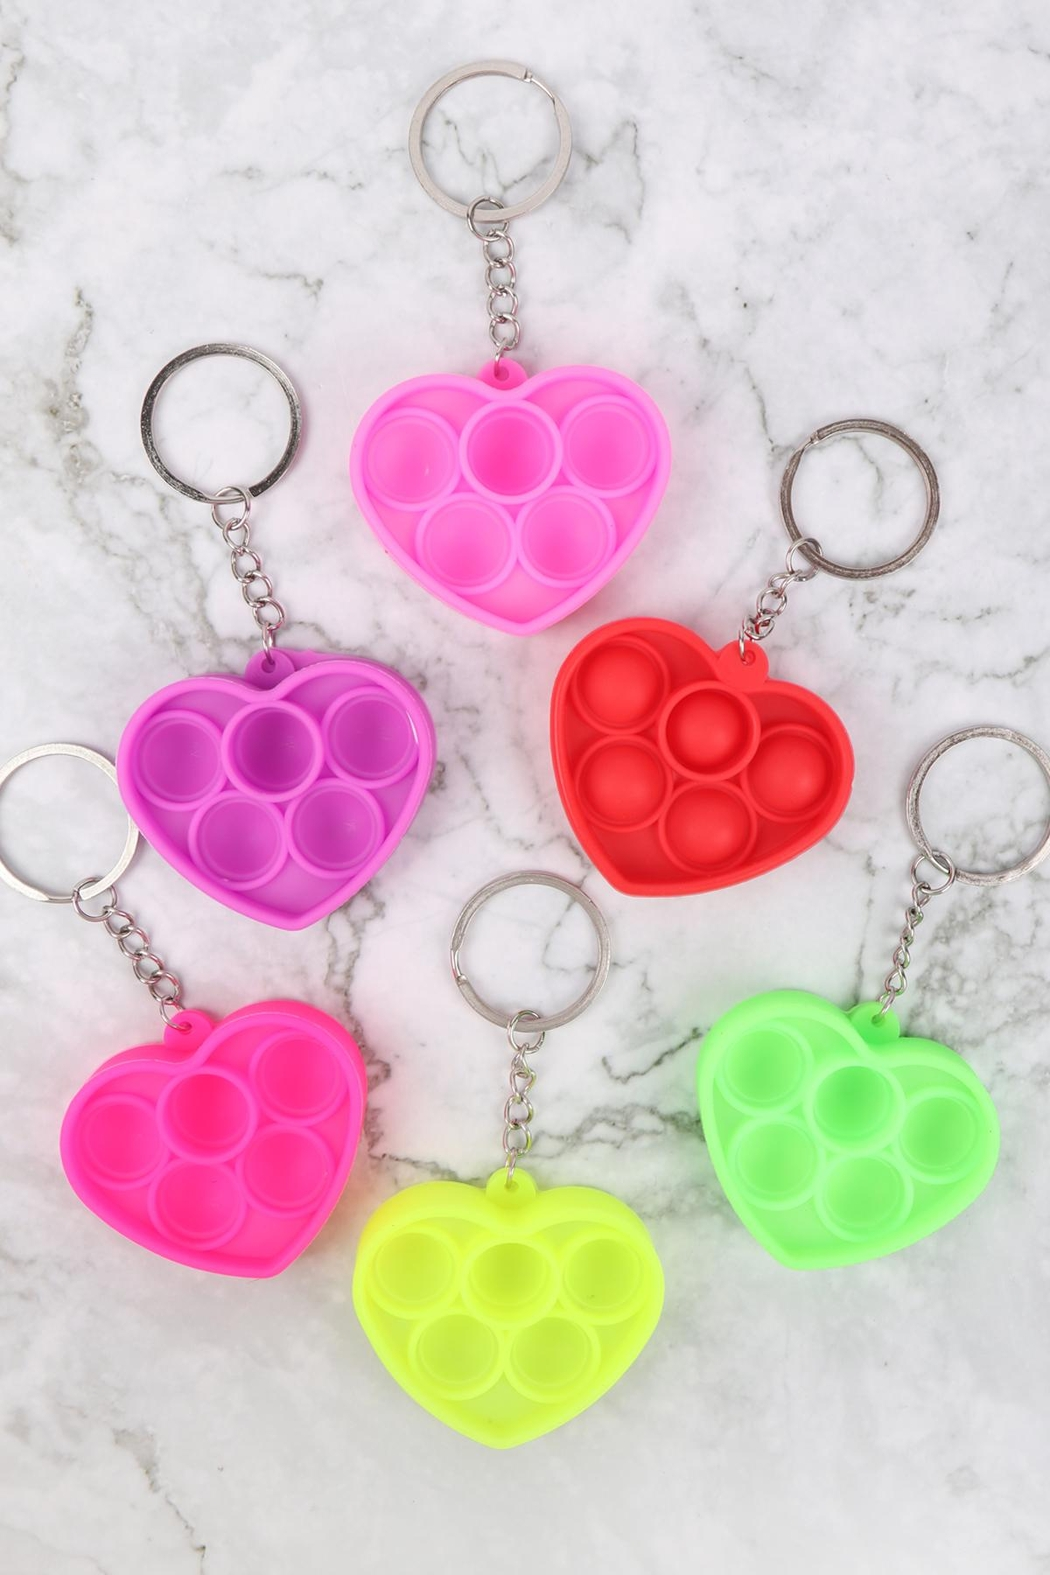 Riah Fashion Pop-Fidget-Sensory-And-Stress-Reliever-Heart-Multicolor-Toy-Keychain - Front Full Image